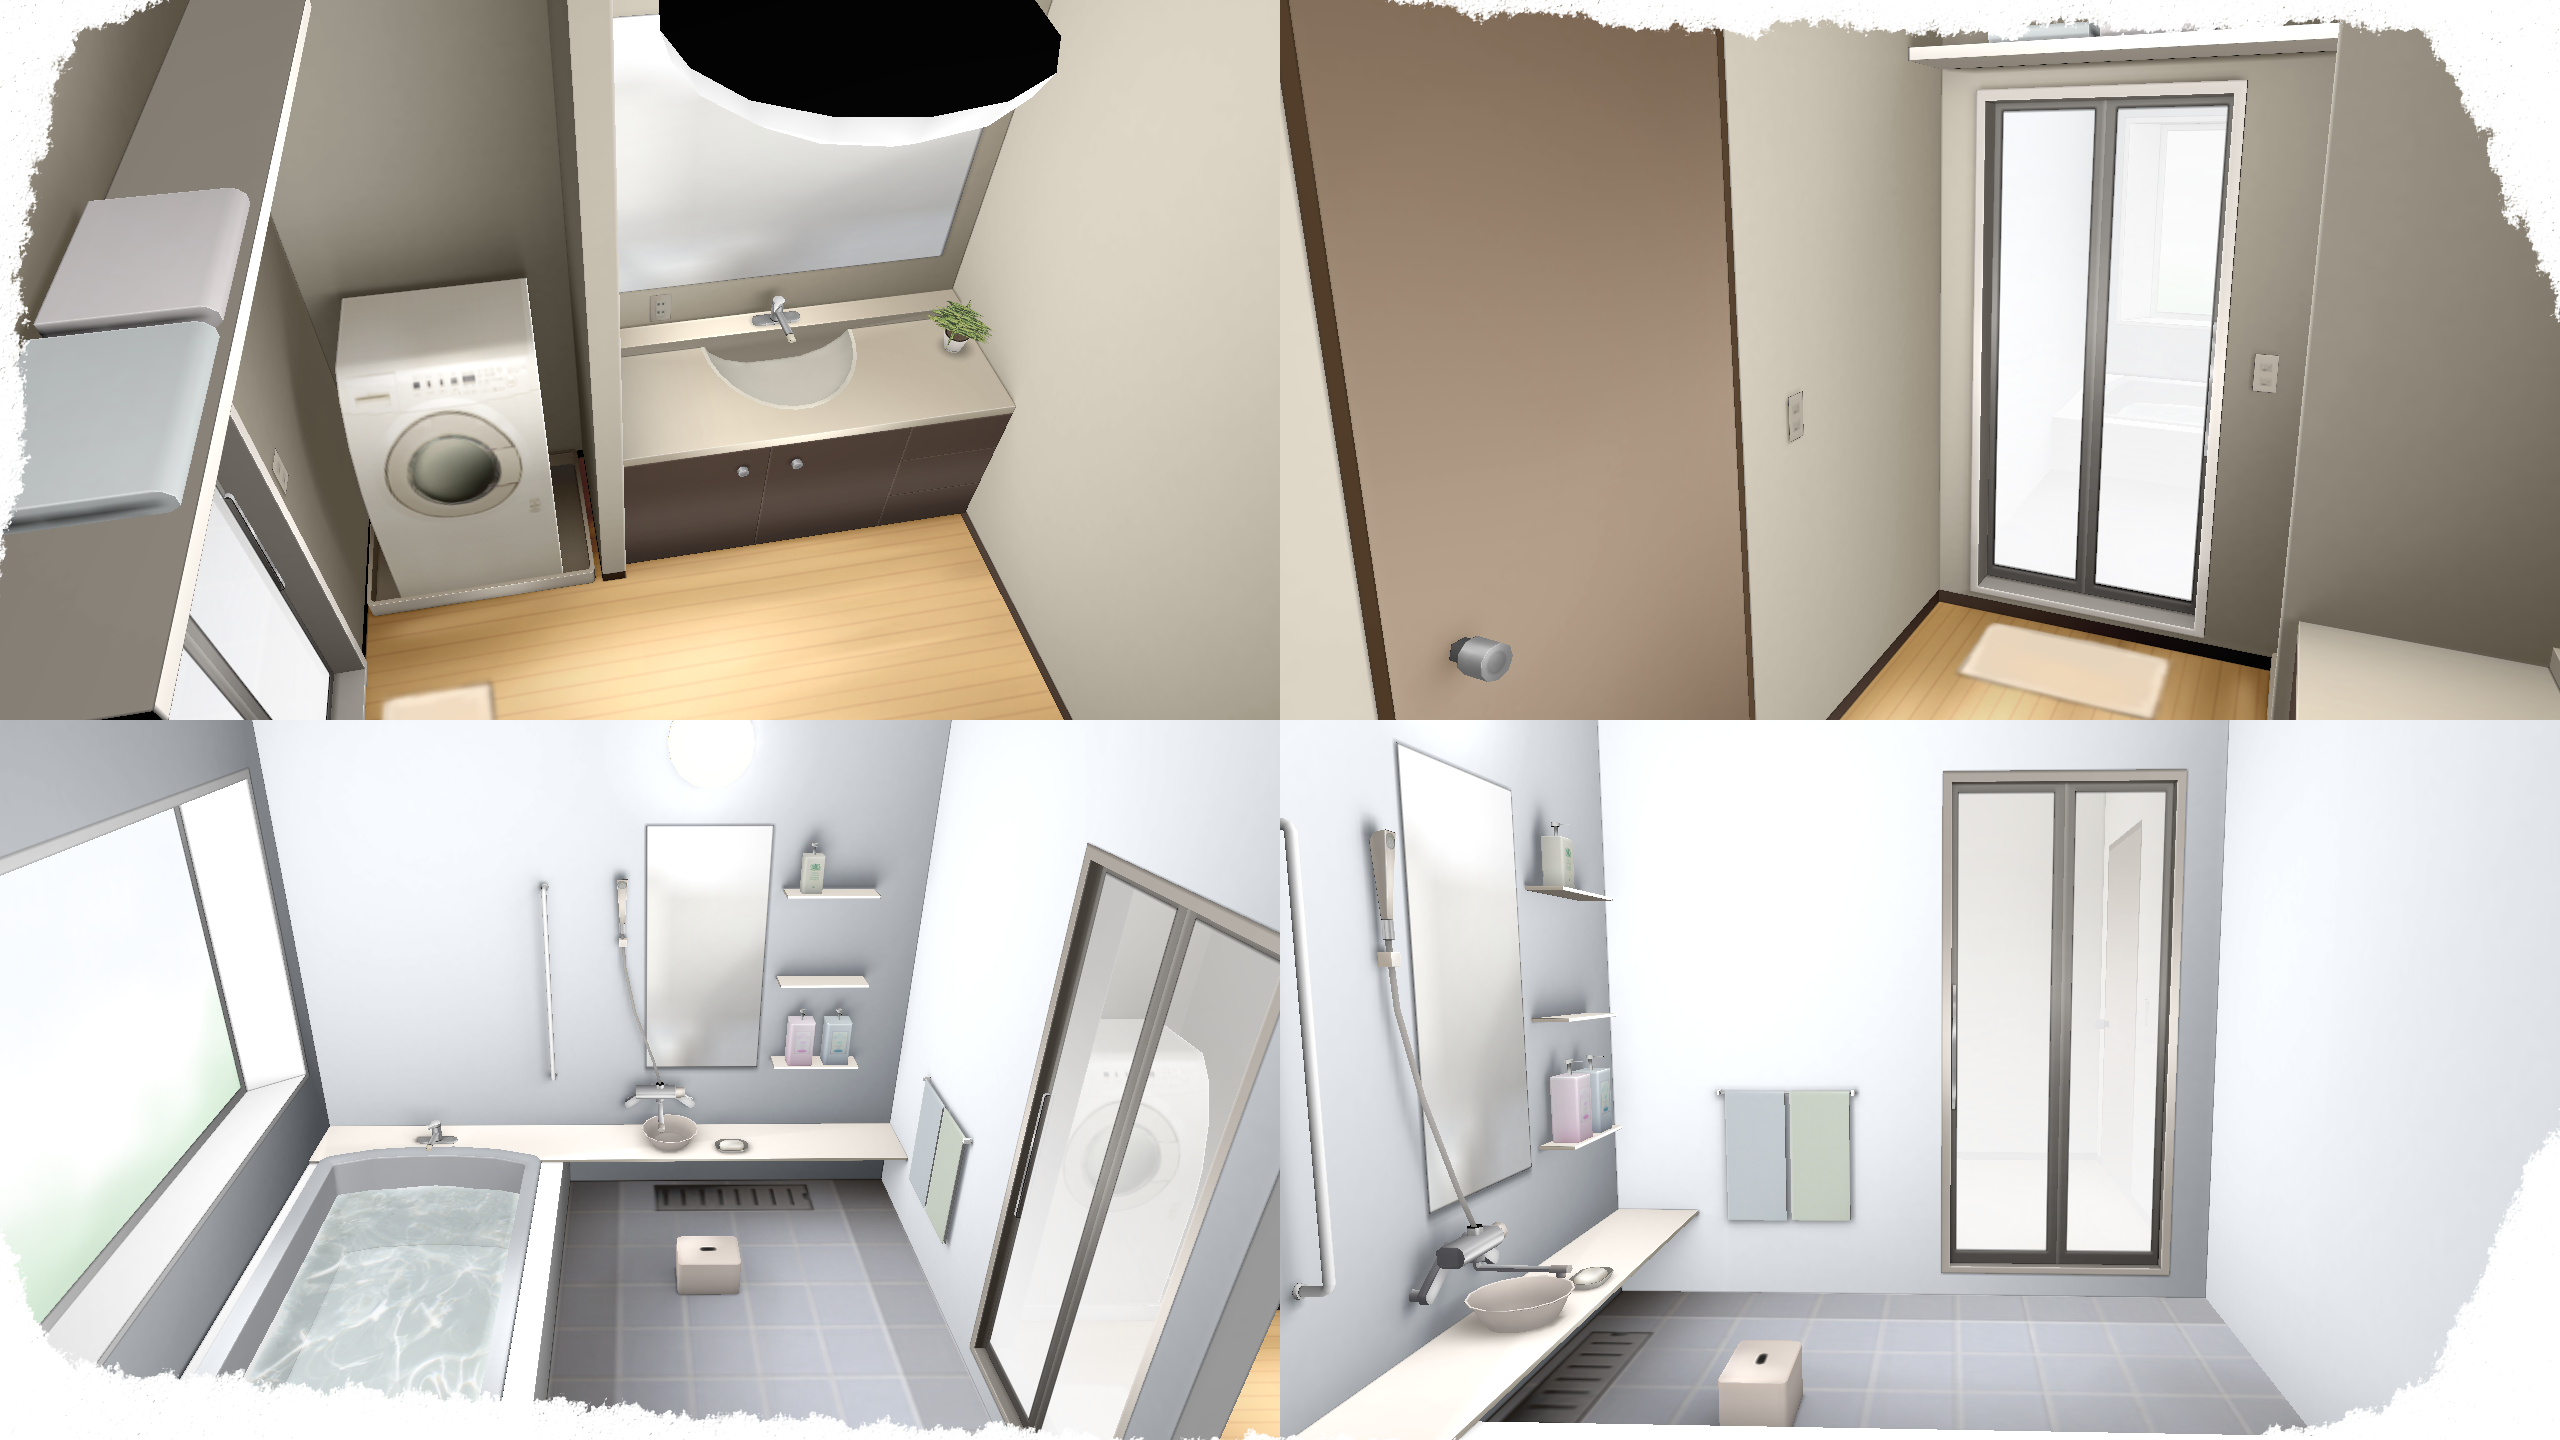 Interiors Bathrooms on MMD-Stages - DeviantArt